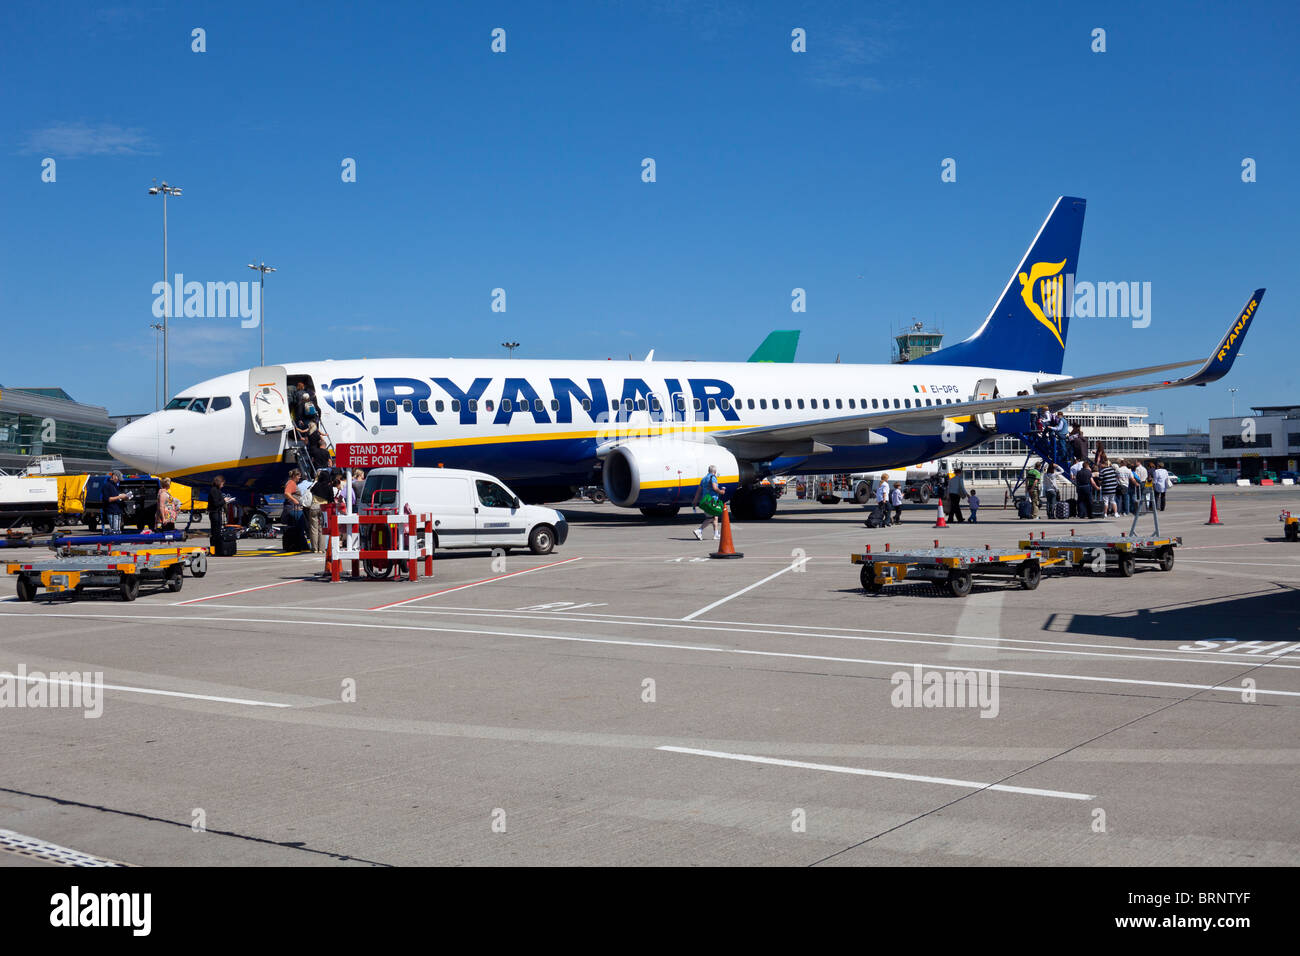 passengers boarding RyanAir flight, Dublin airport, Ireland - Stock Image